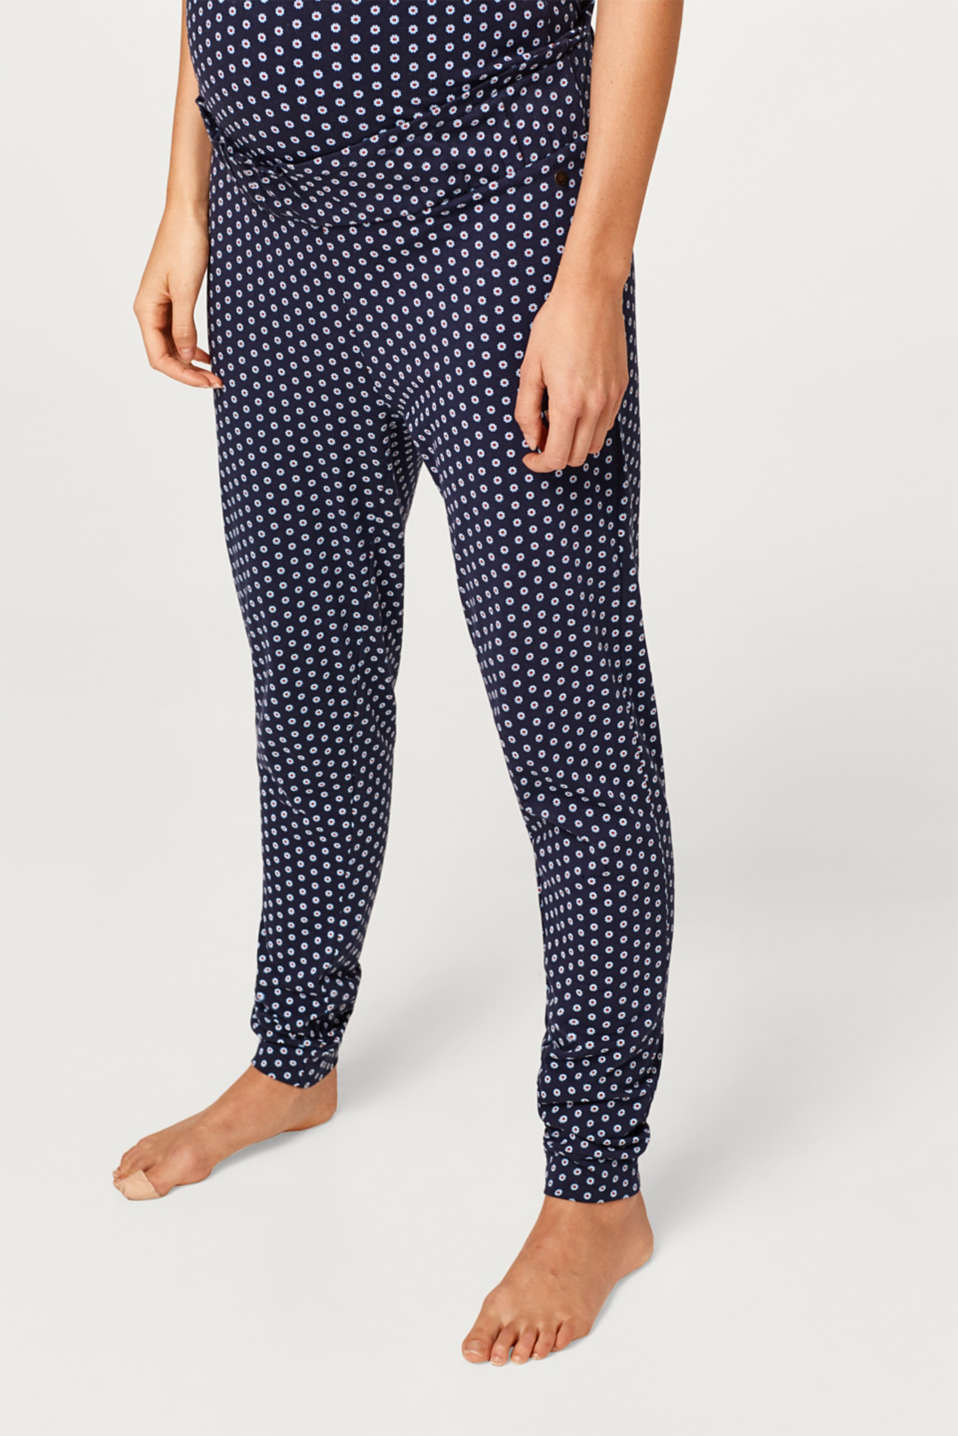 Esprit - Trousers with an under-bump waistband containing organic cotton